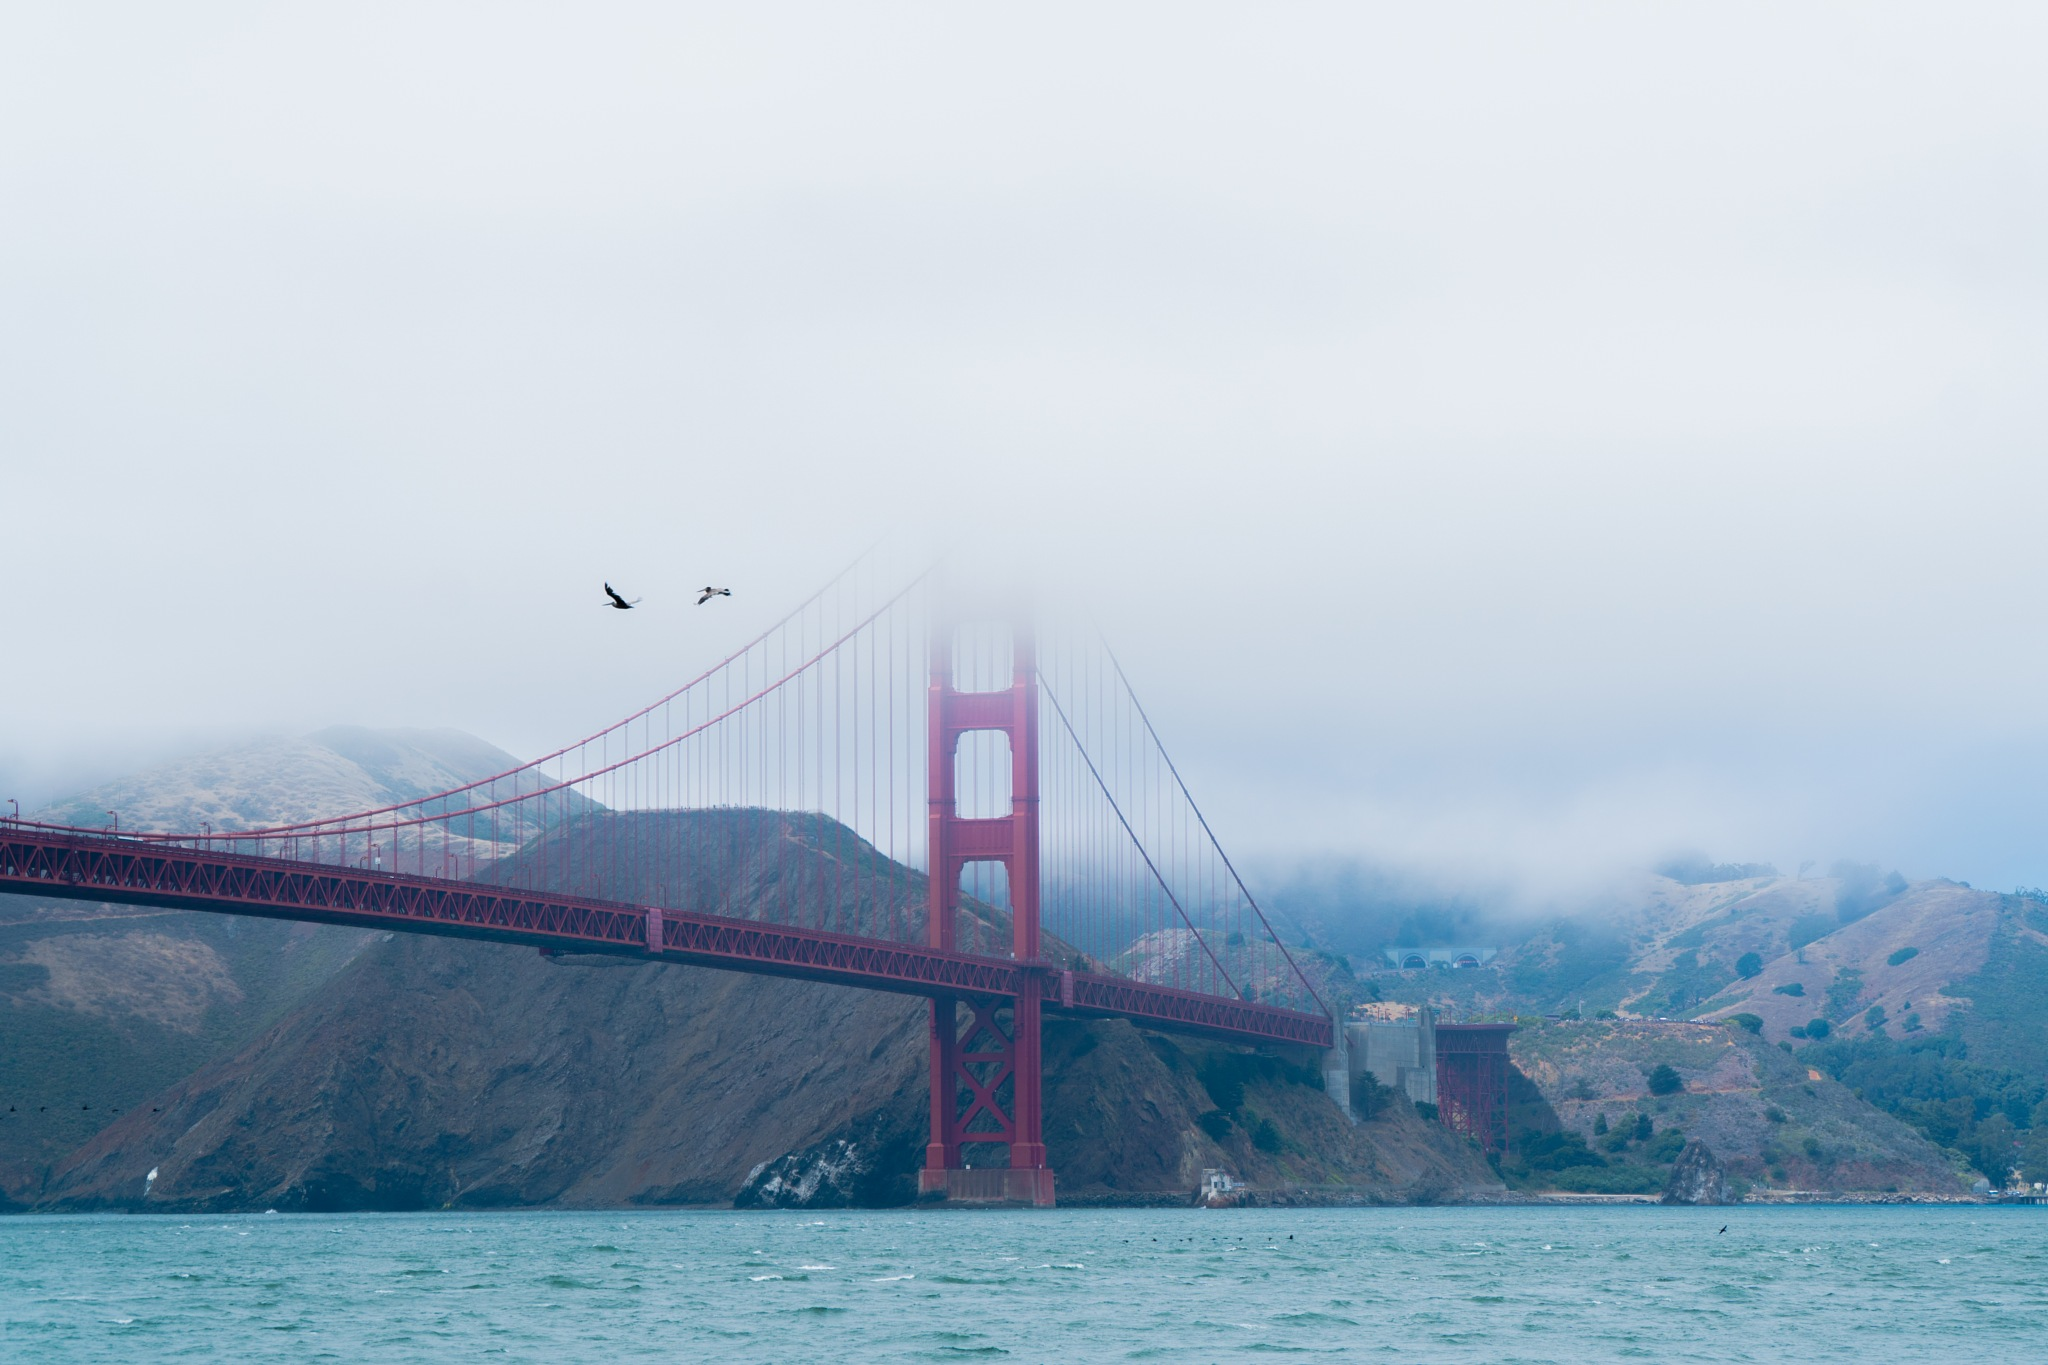 The Golden Gate  by Lukeghost